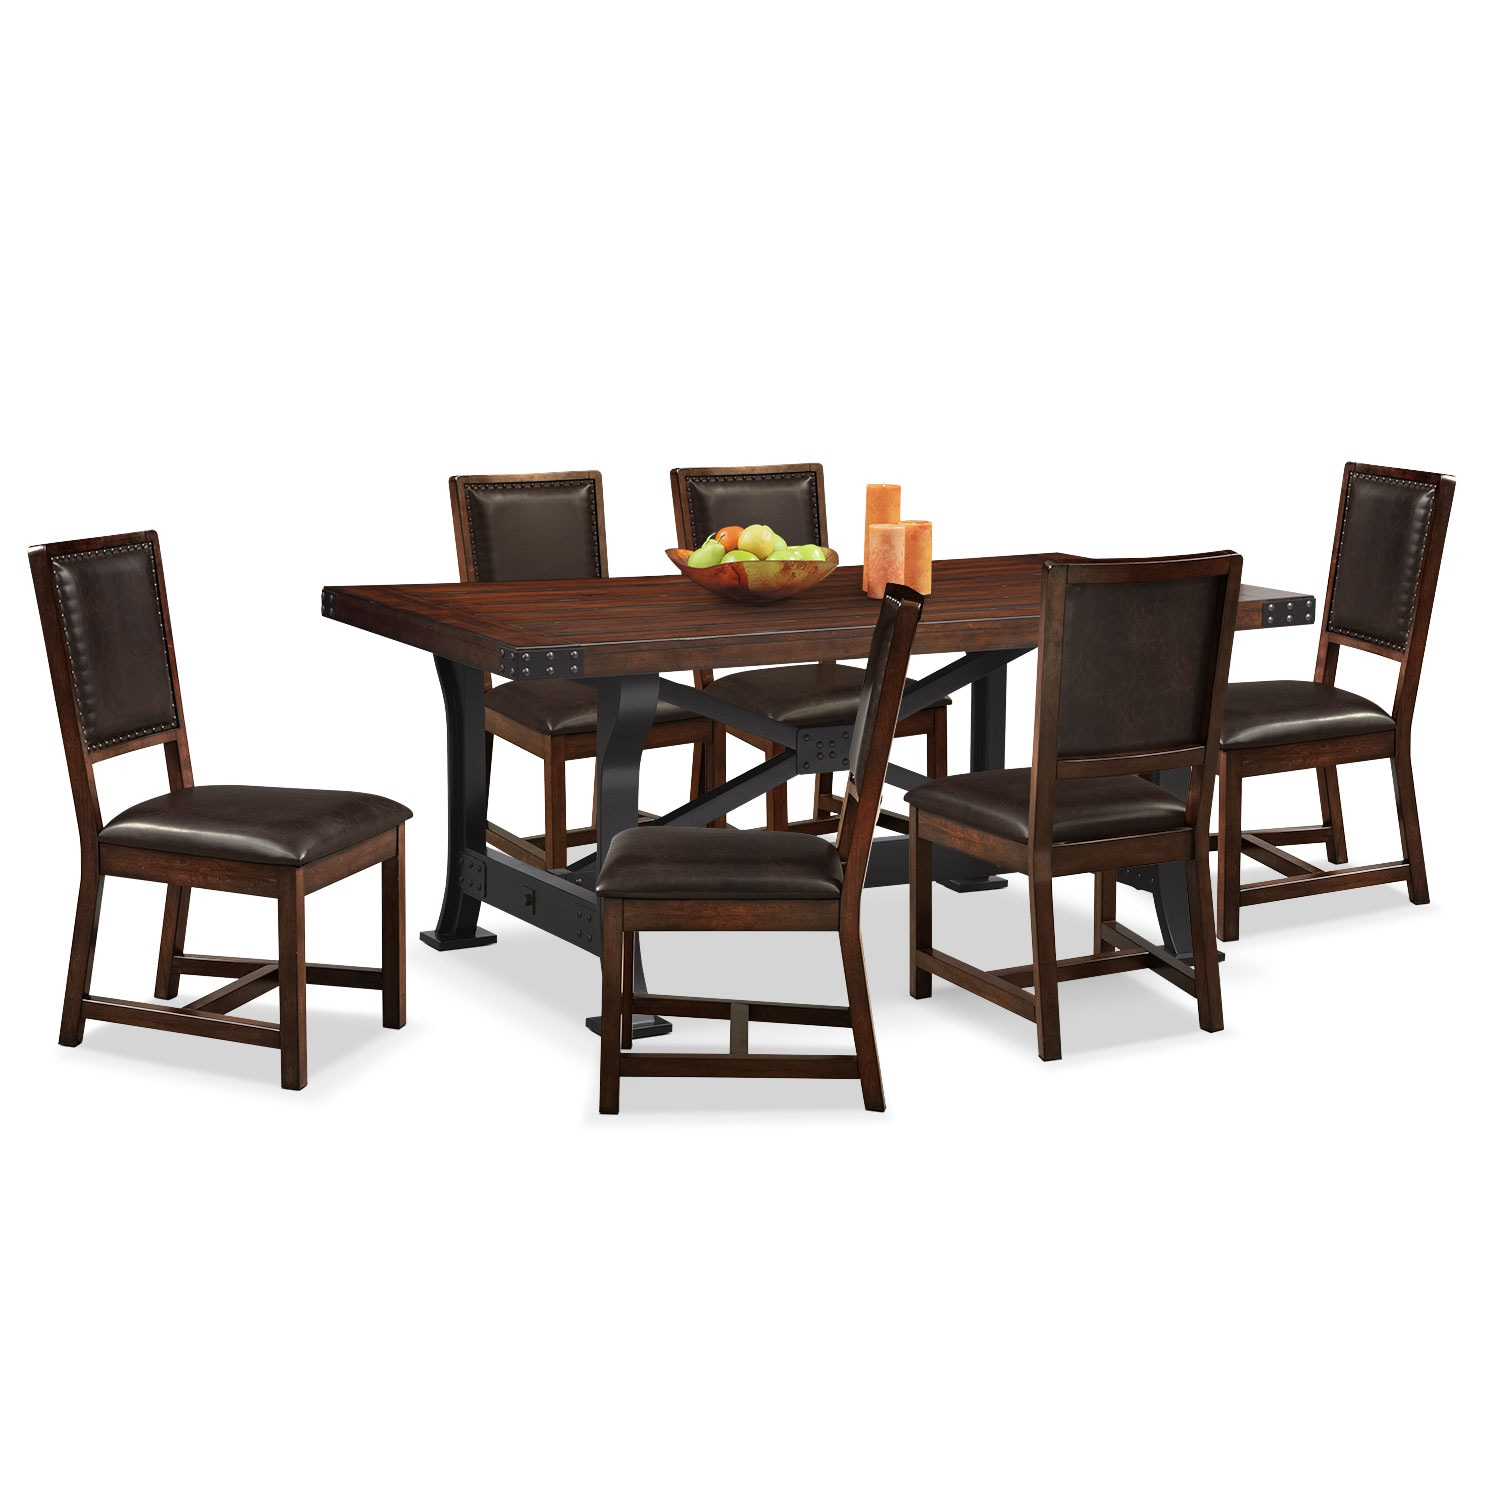 Newcastle Table And 6 Chairs